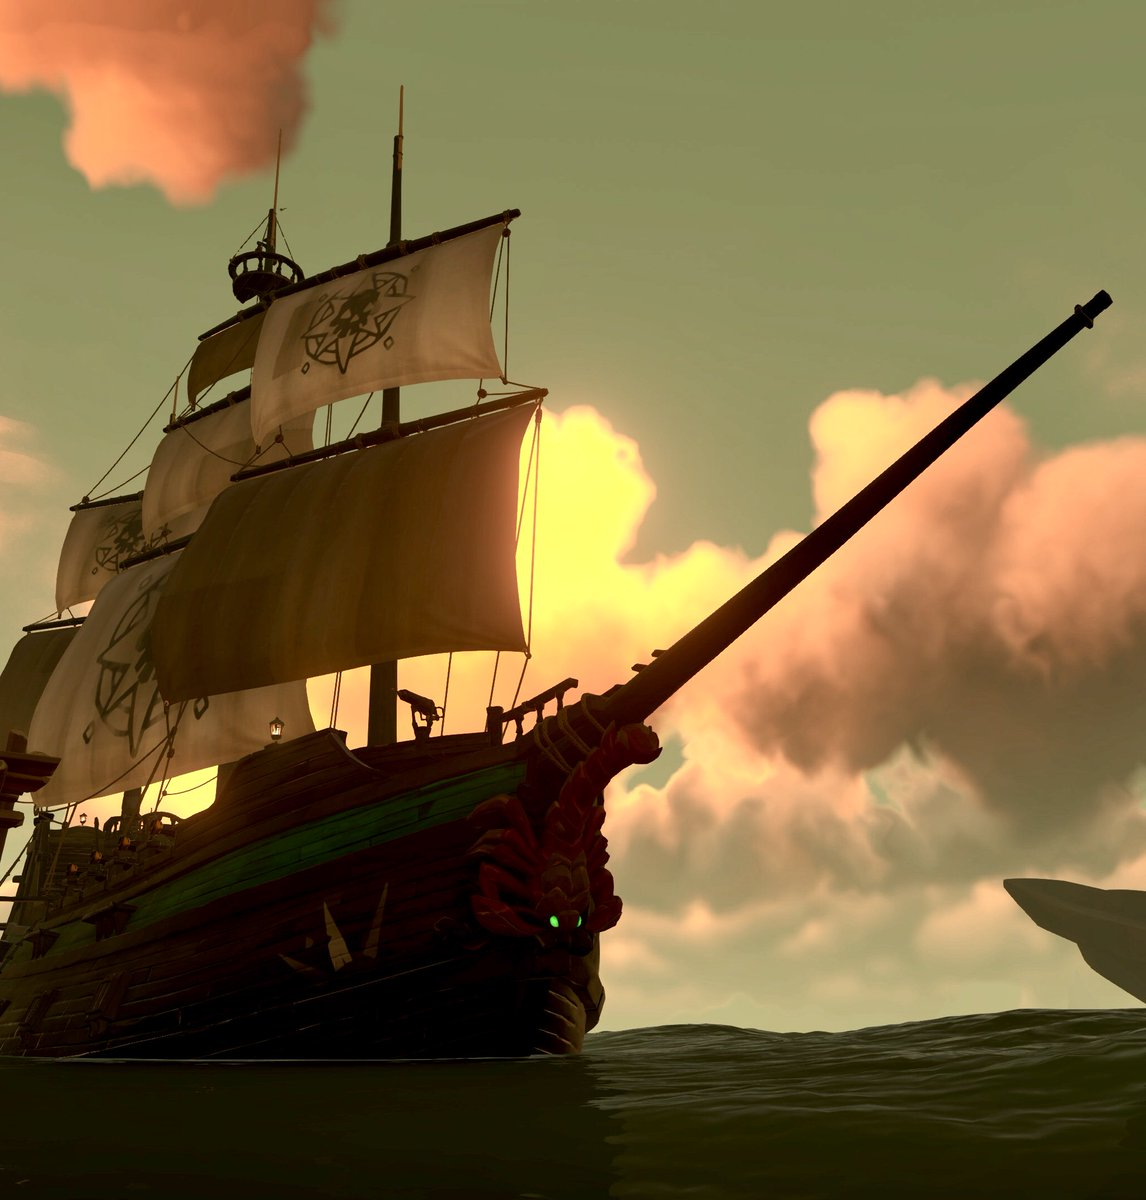 Oh she's sexy #SeaOfThieves